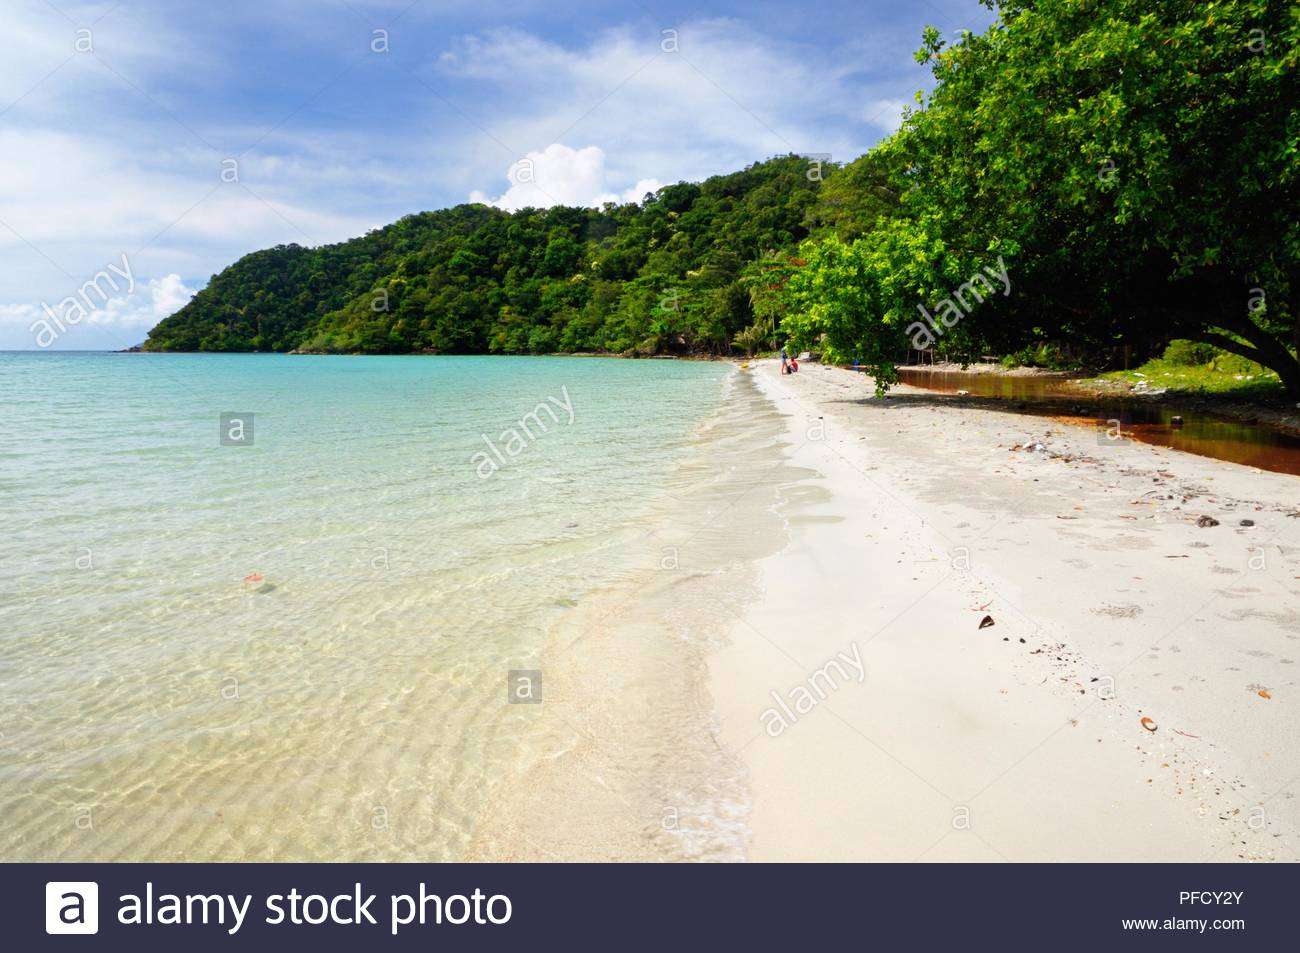 The Long beach on Koh Chang island, Thailand. - Stock Image